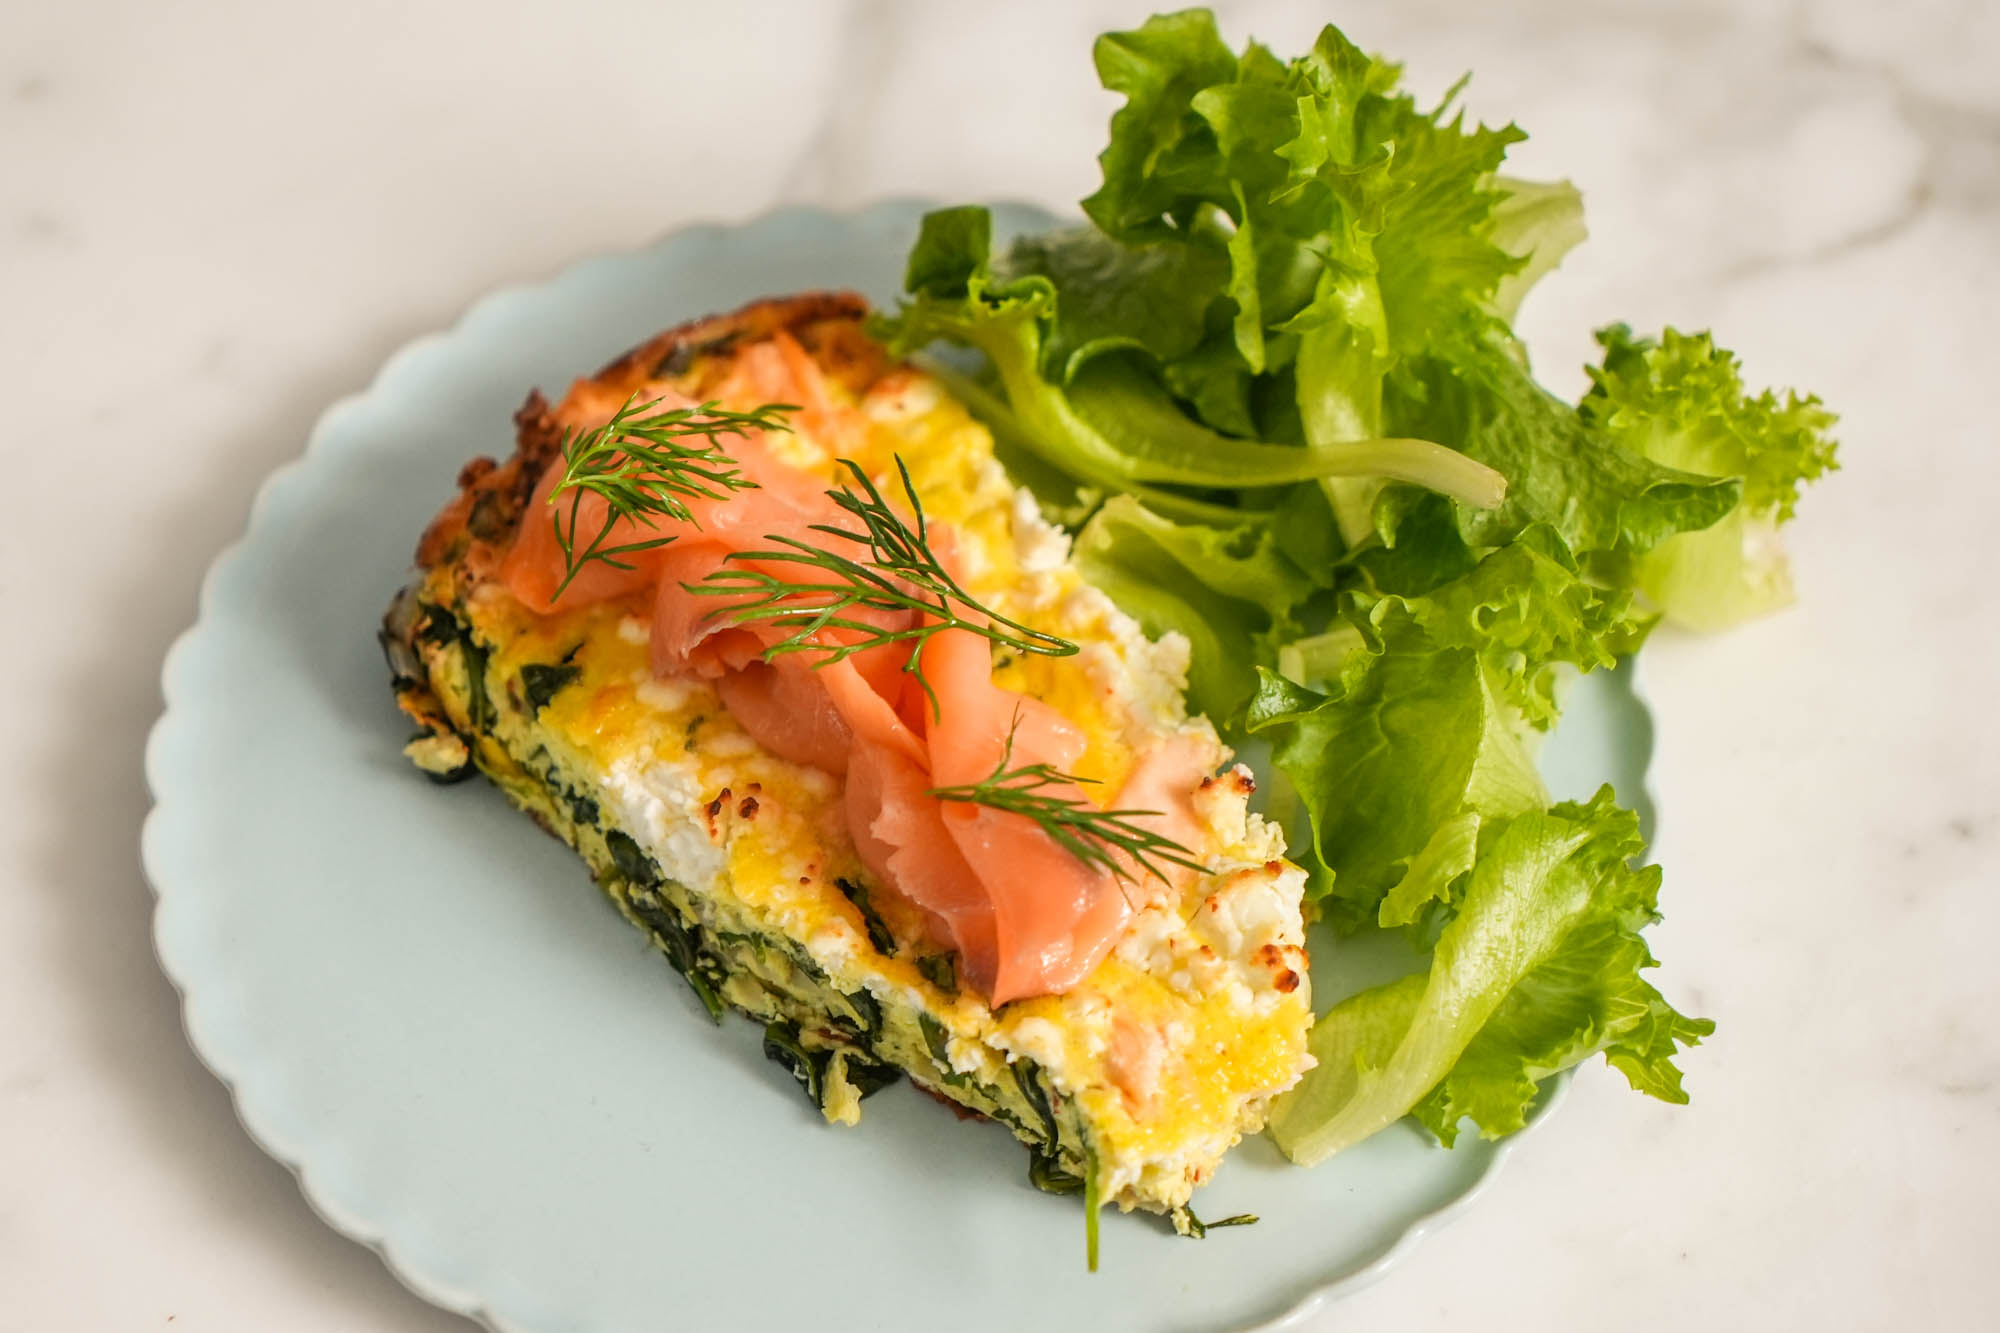 Eric Adjepong's salmon and arugula frittata with a side salad